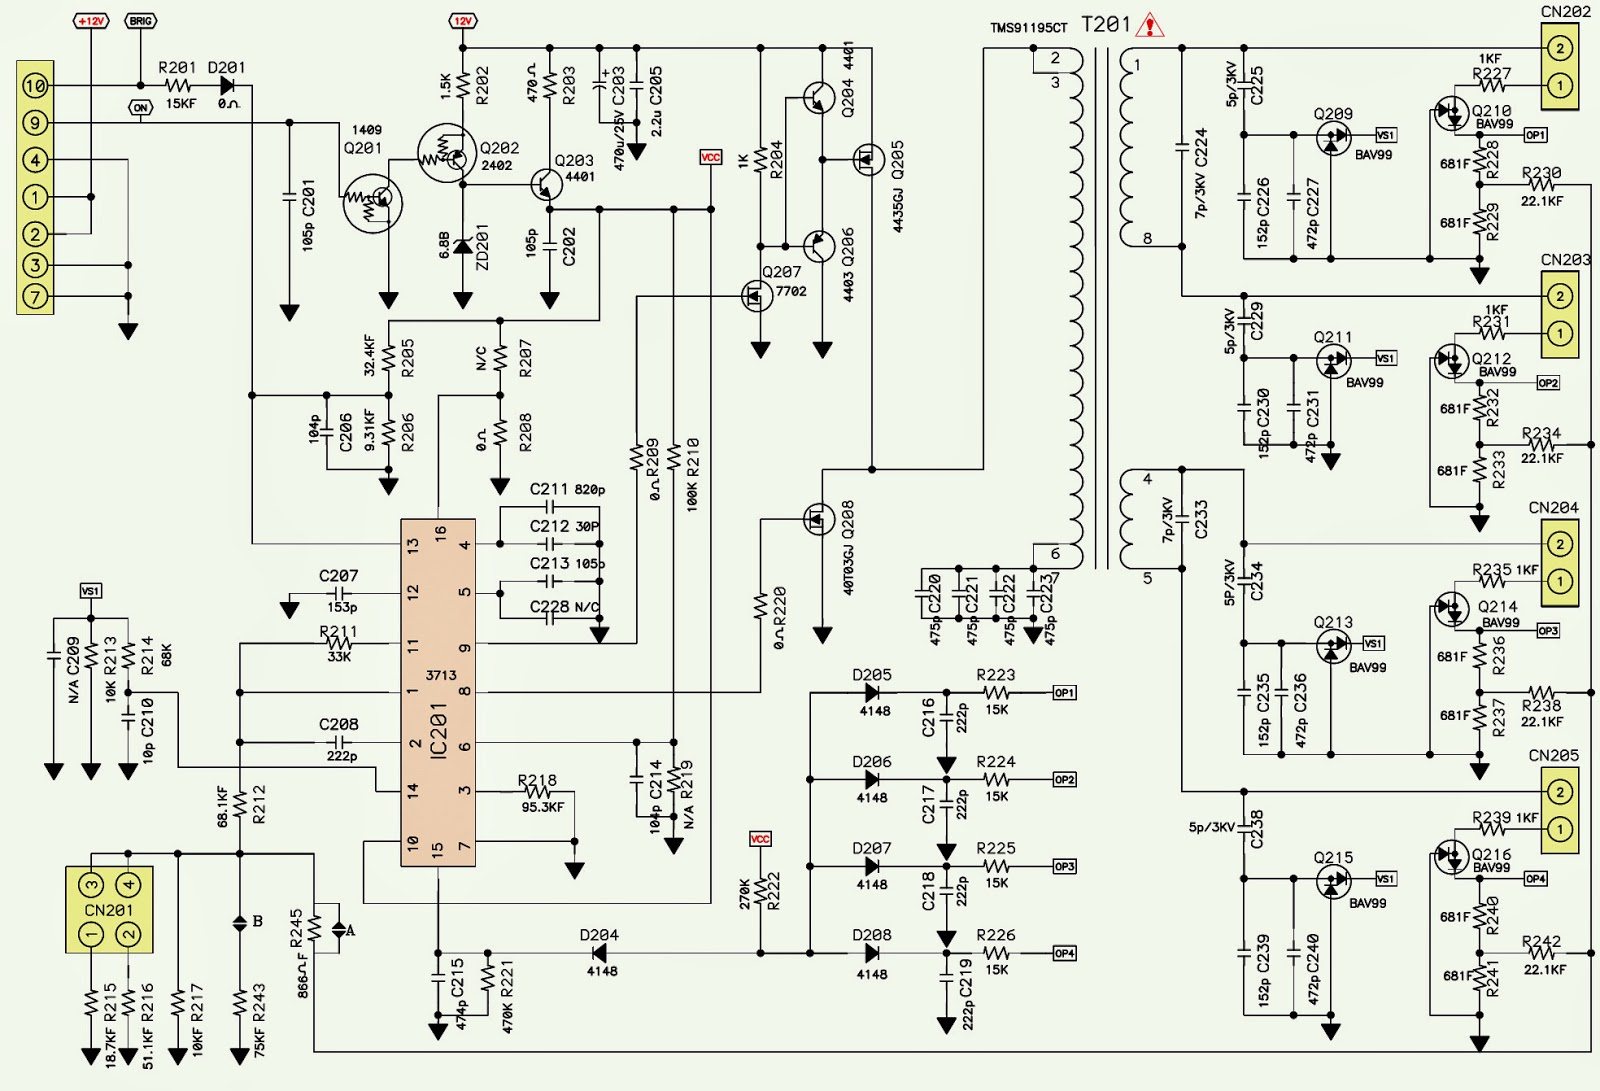 Sony Kv29x5a Crt Tv Smps And Aoc in addition Micro Inverter Wiring Diagram Free Download Schematic further Konka Lcd Tv Lc32as28 Lc26a2 Smps besides 1998 Subaru Forester Fuse Box Sbf 1 Wiring Diagrams additionally Rheem Central Air Conditioning Wiring Diagram. on tv schematic diagrams